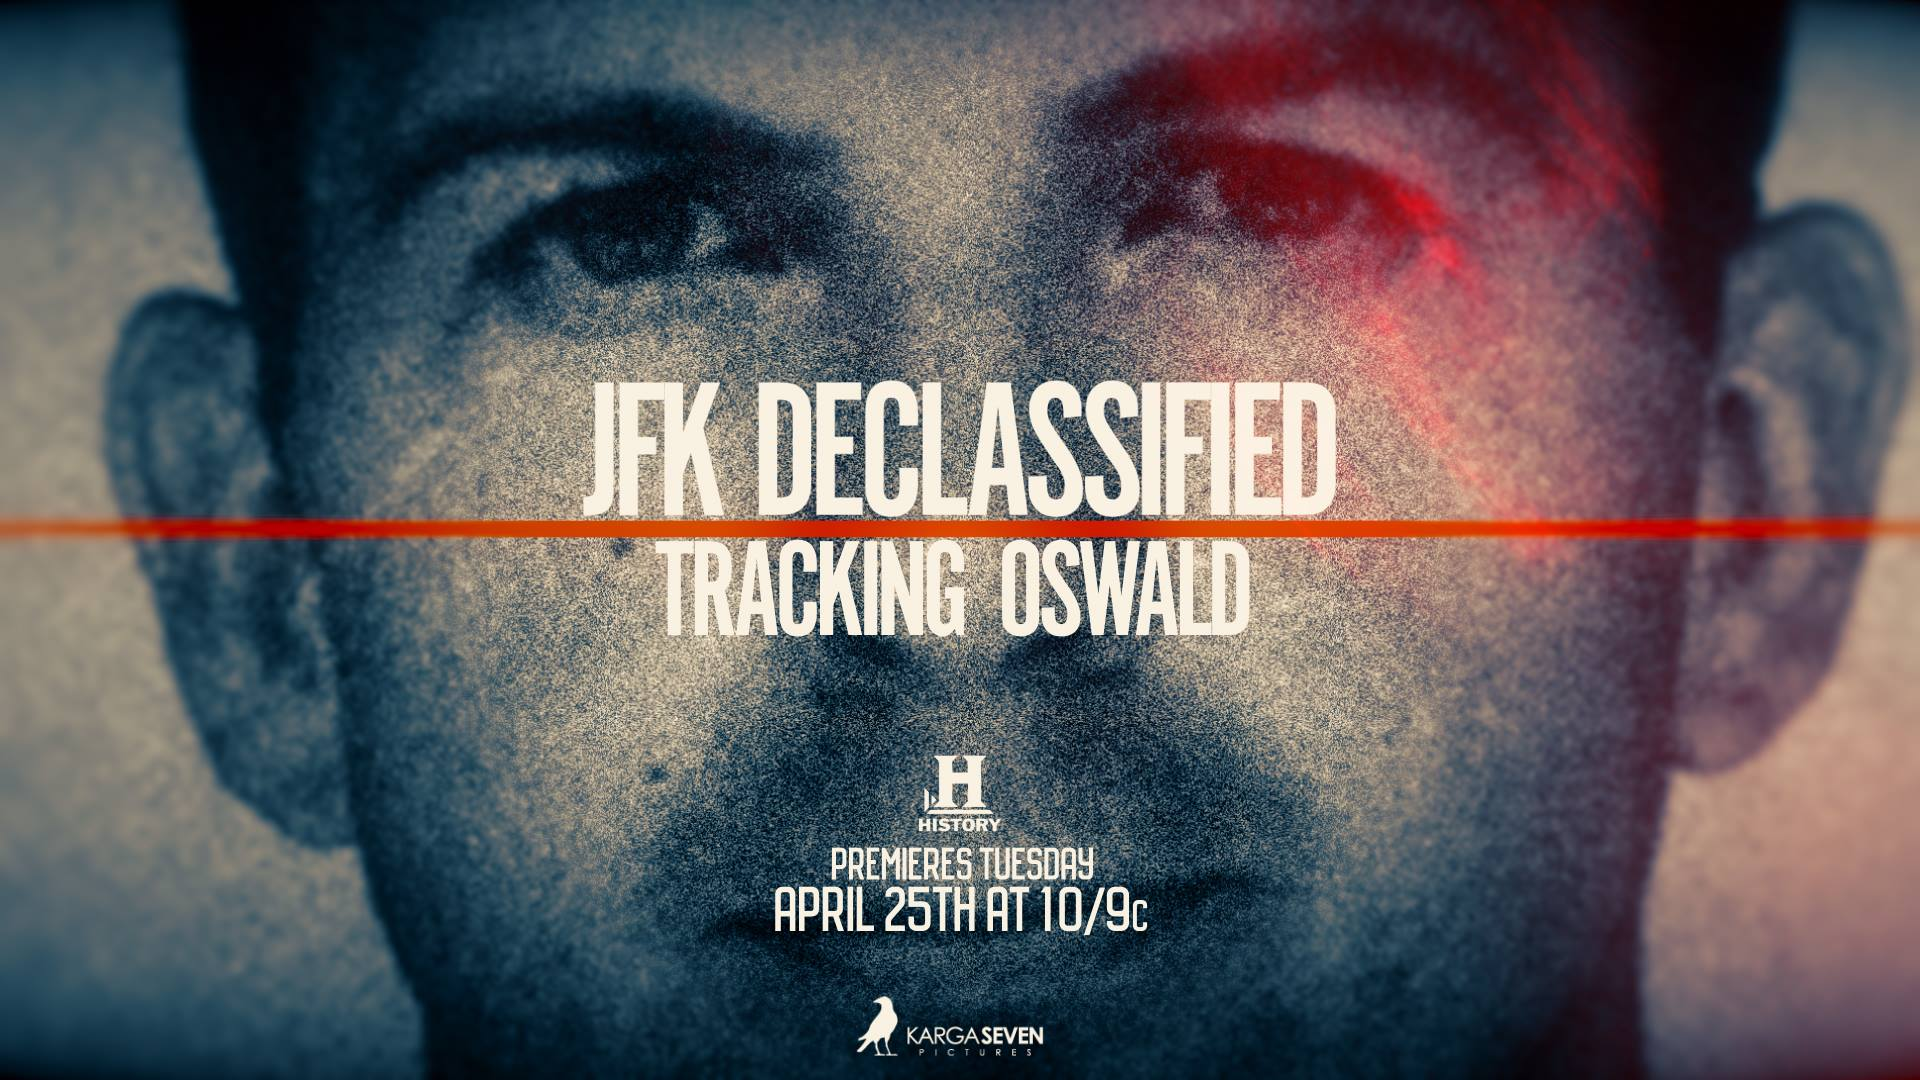 UK Fixer recent work on JFK Declassified: Tracking Oswald